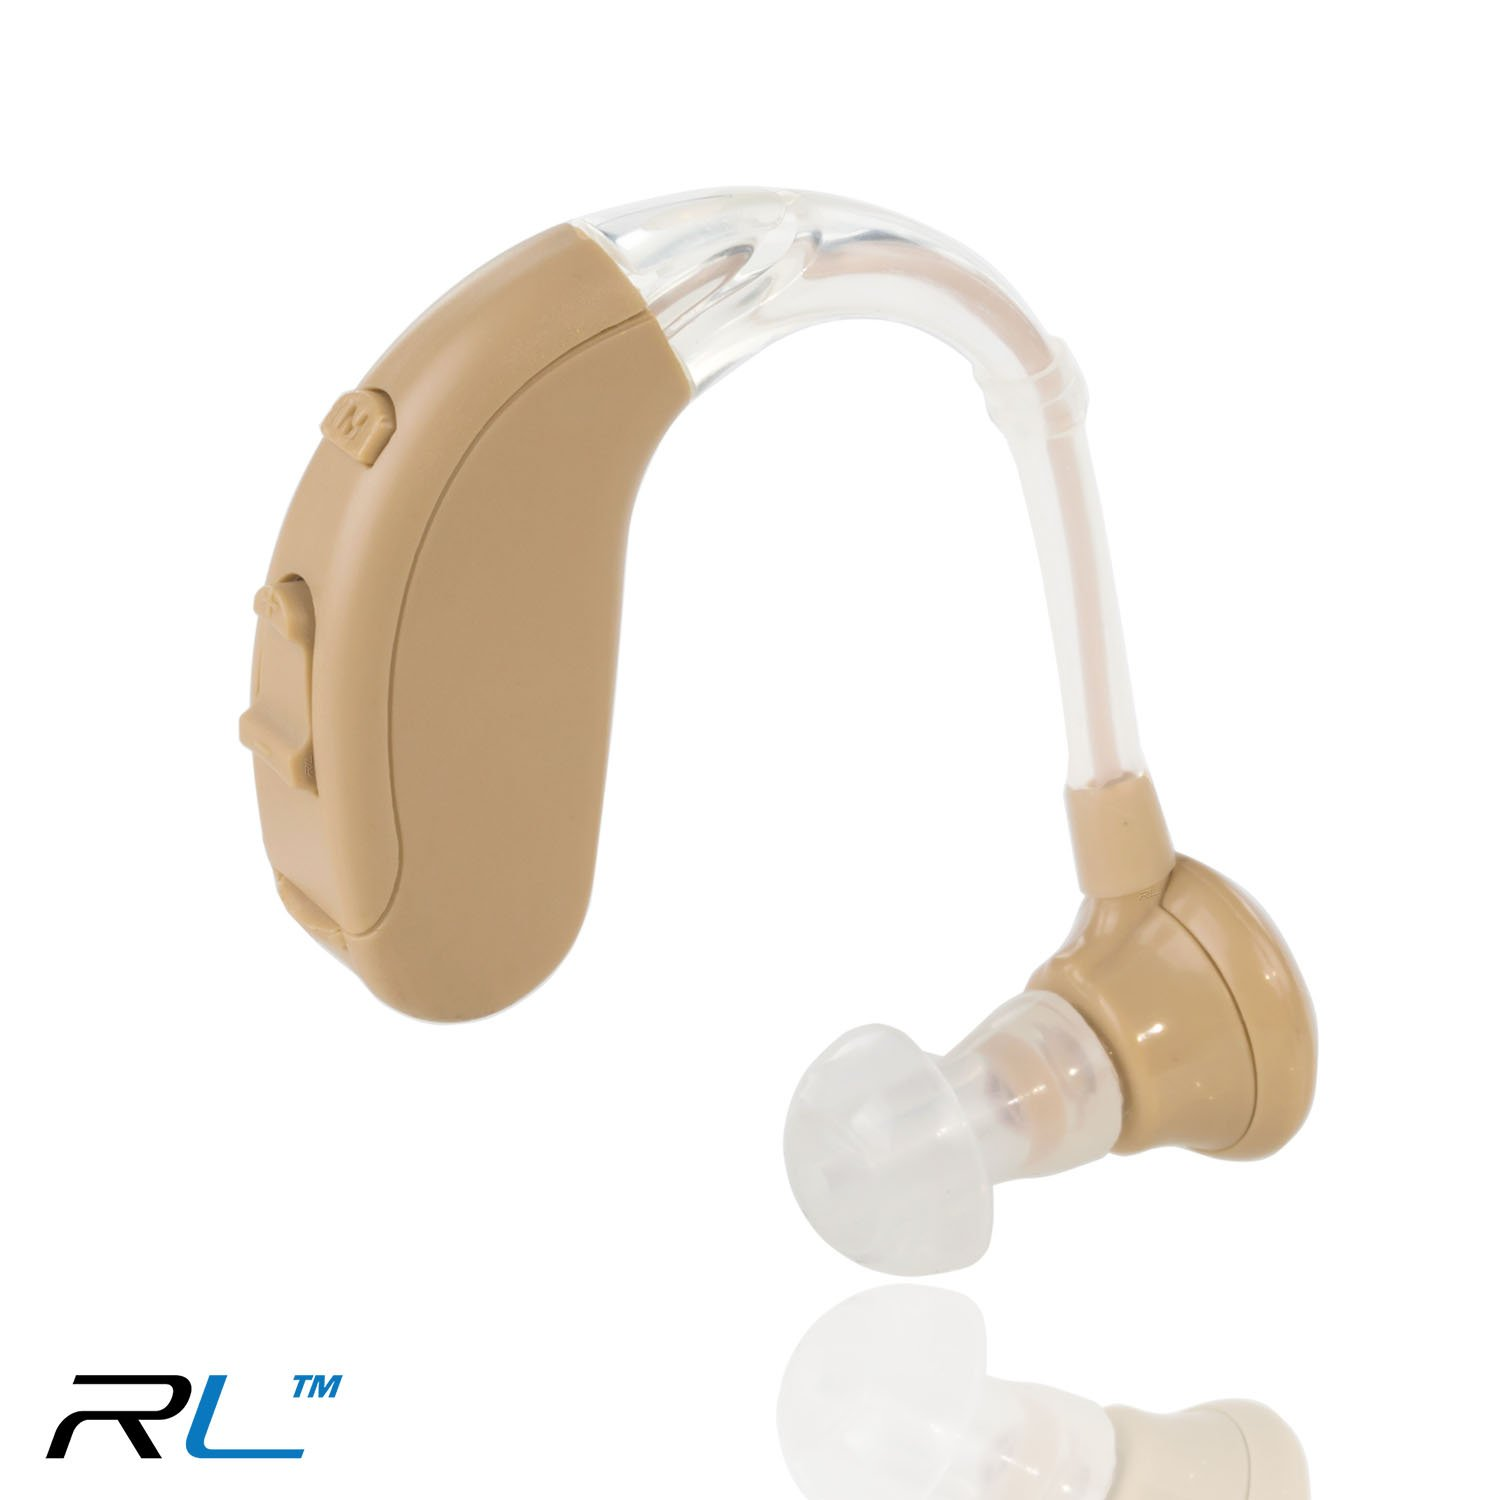 R&L Digital Hearing Amplifier, Small and Lightweight Sound Amplifiers, Adjustable for Left and Right Ear